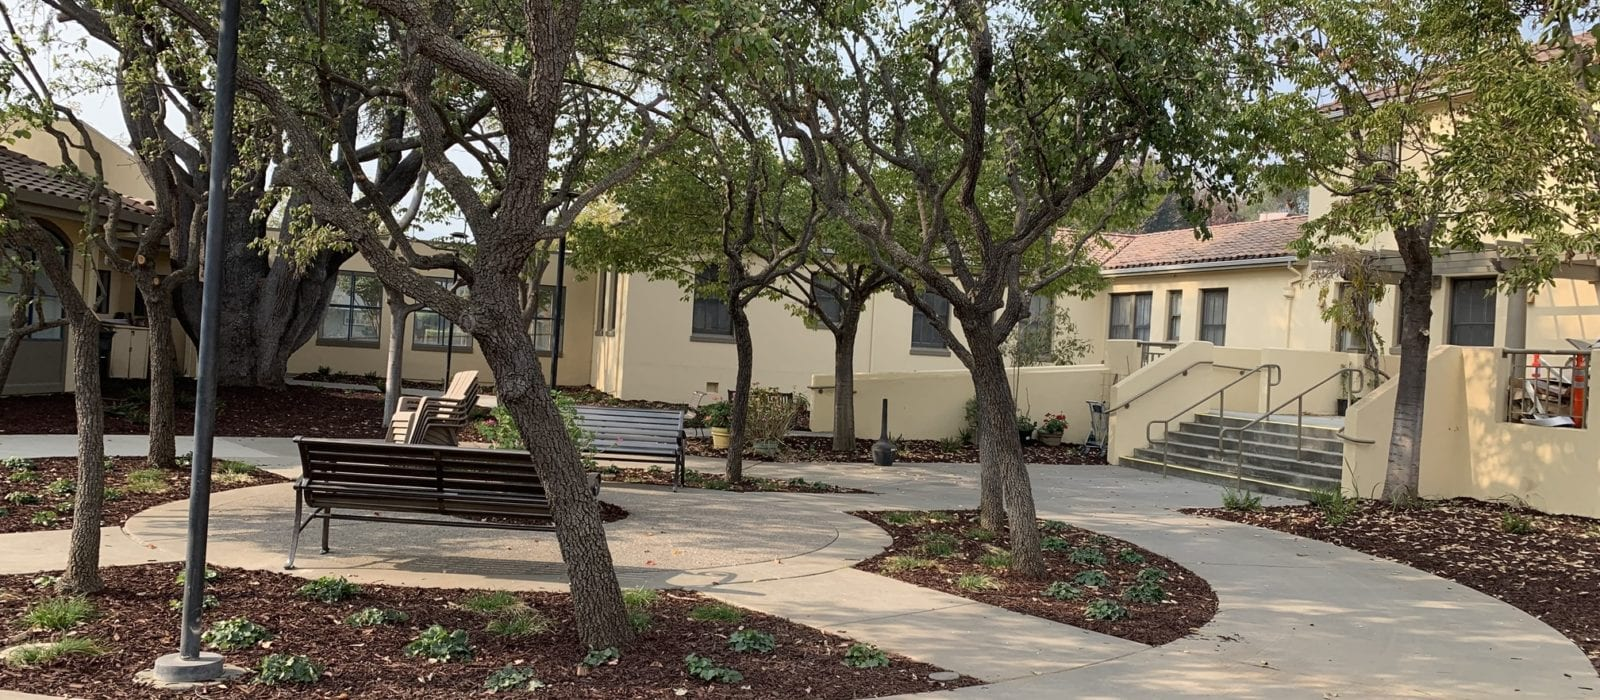 Courtyard with trees and benches at Wheeler Manor property